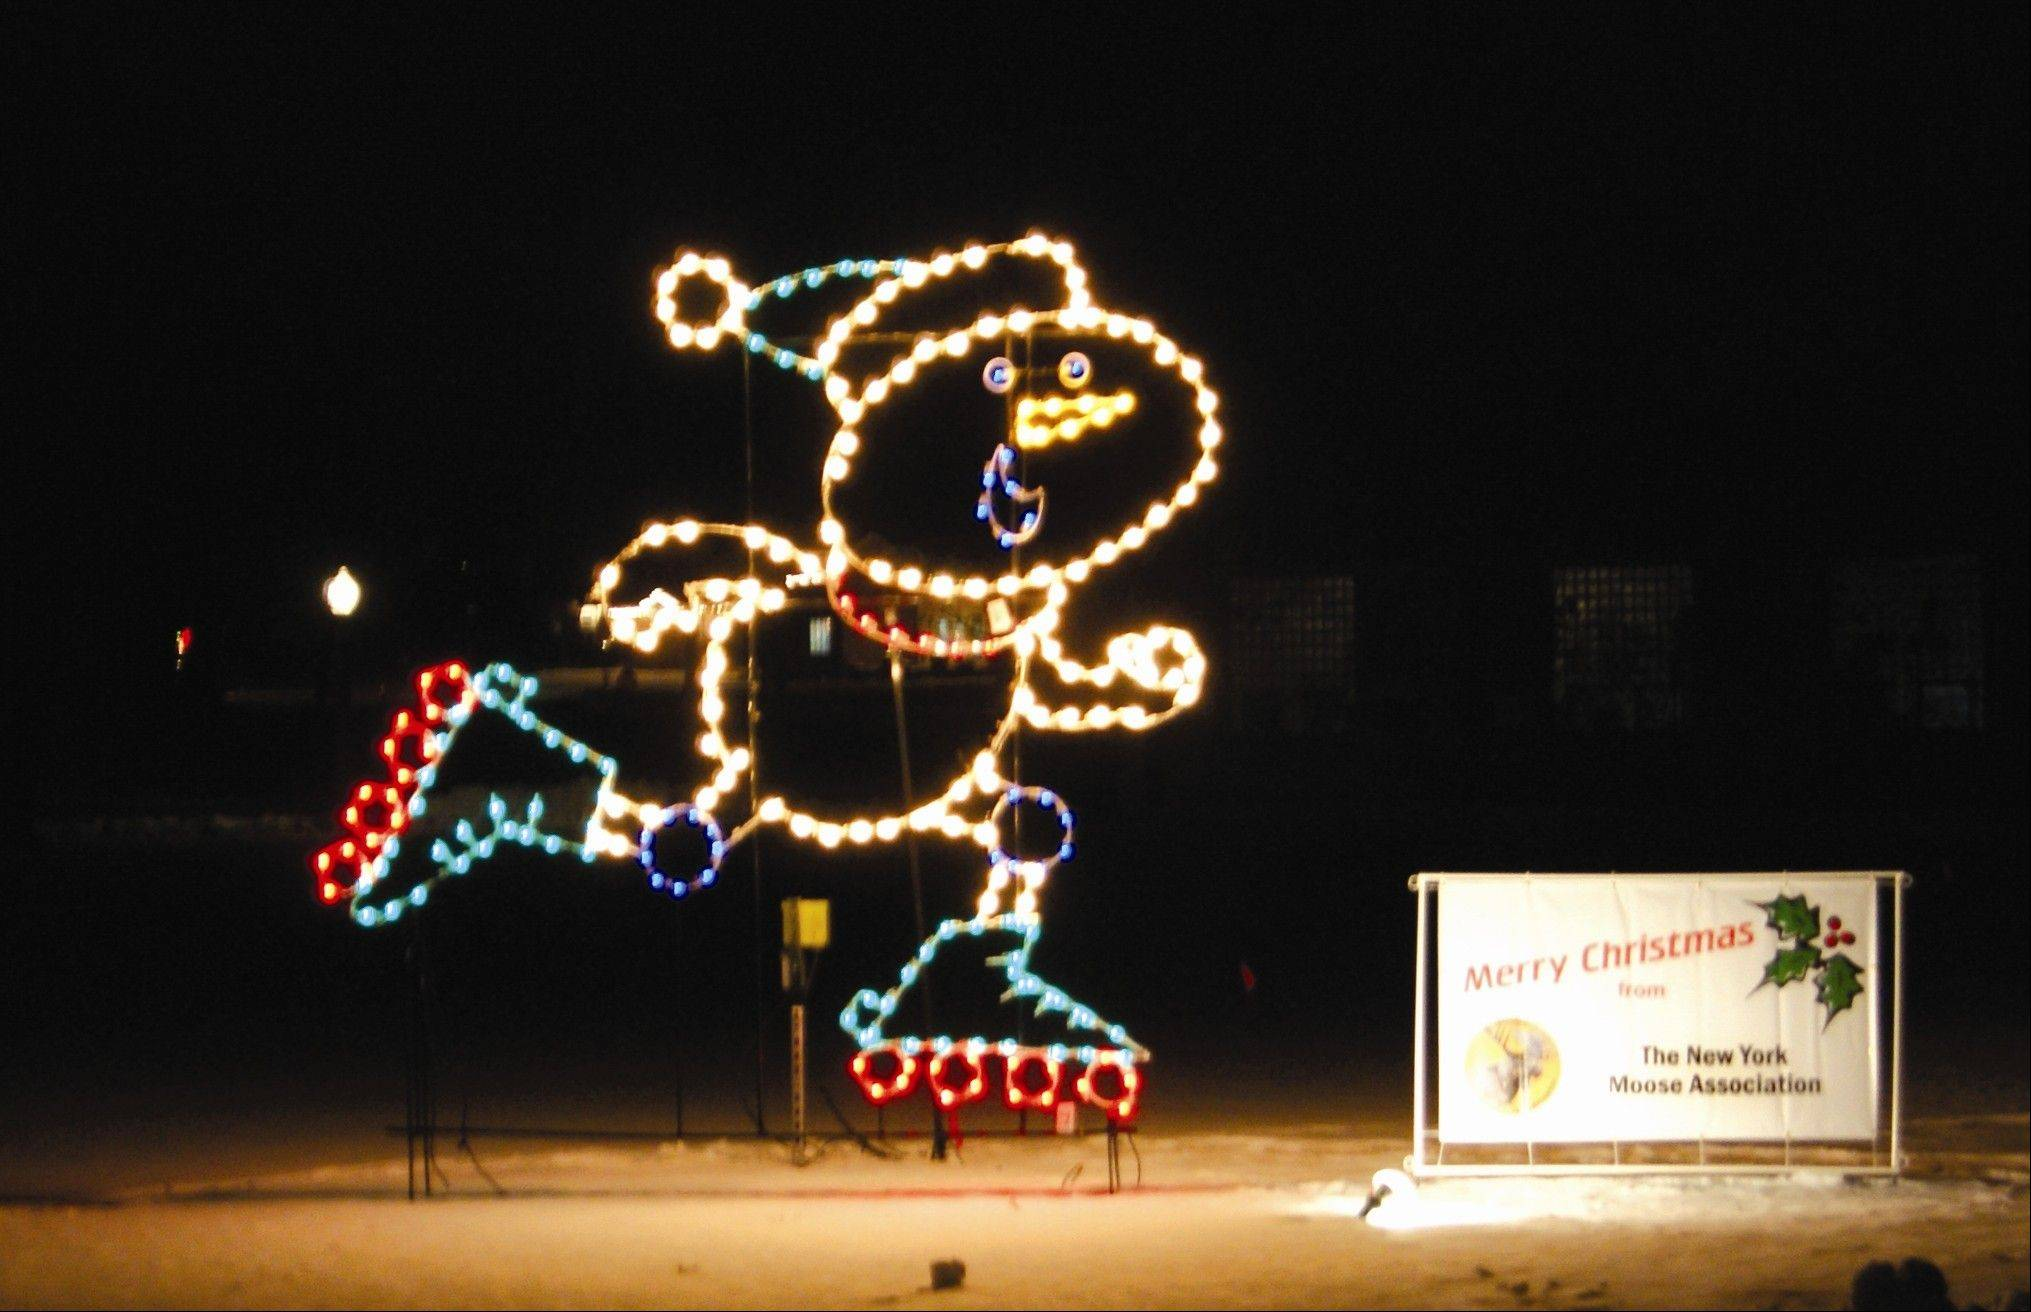 All of the proceeds from Holiday Lights at Mooseheart go to children in need.